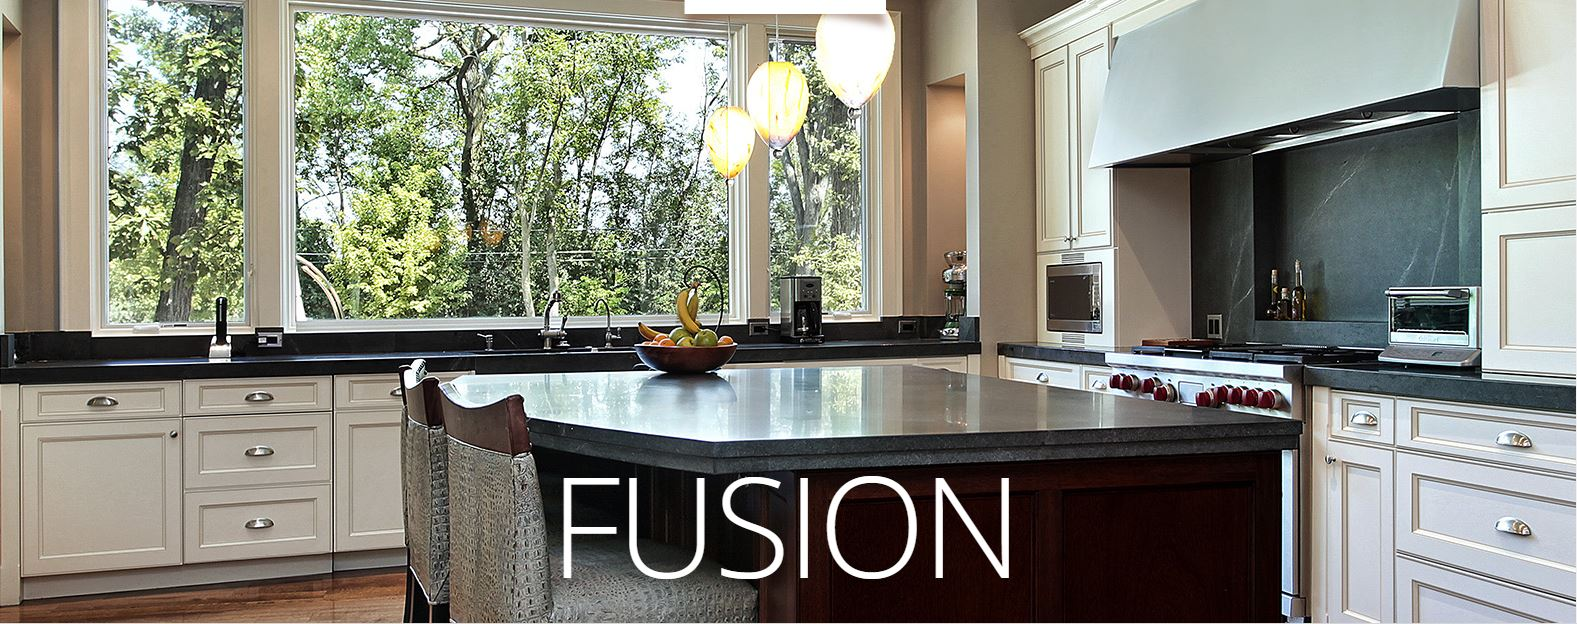 ivory review cabinet wellington fabuwood nexus galaxy reviews frost cabinets kitchen